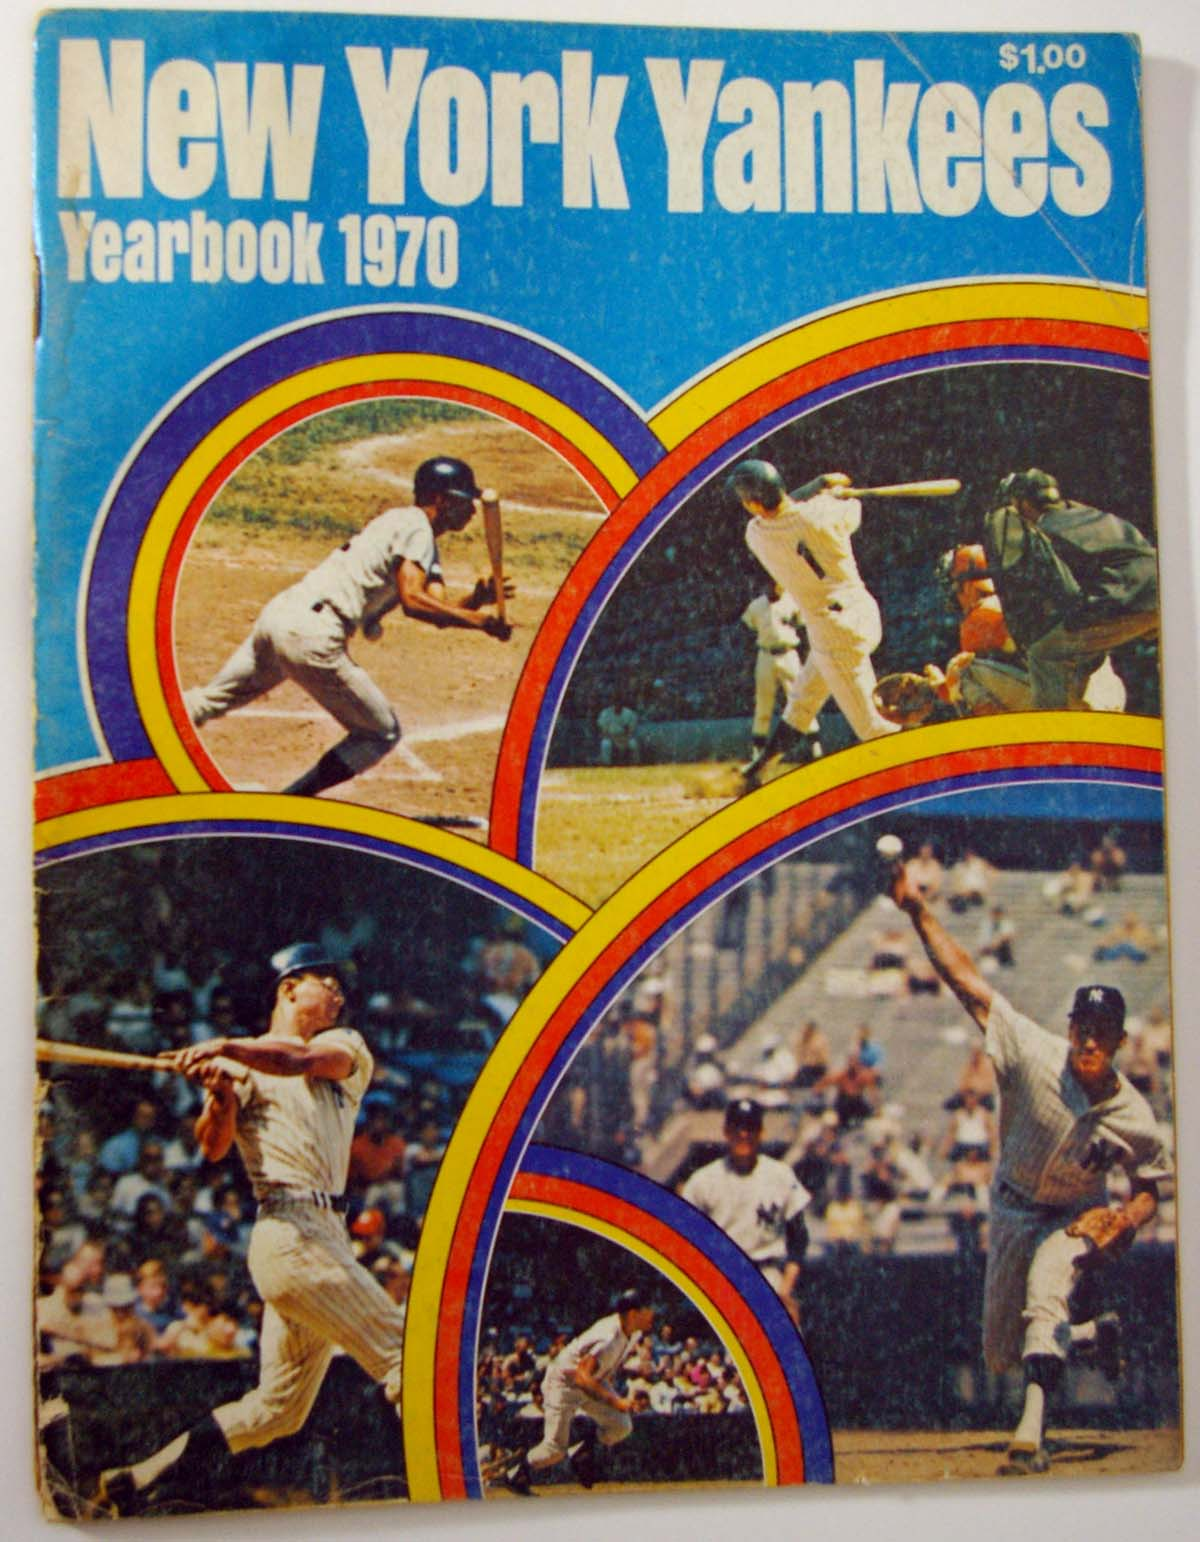 Lot #1450 1970 Yearbook  New York Yankees   Cond: VG